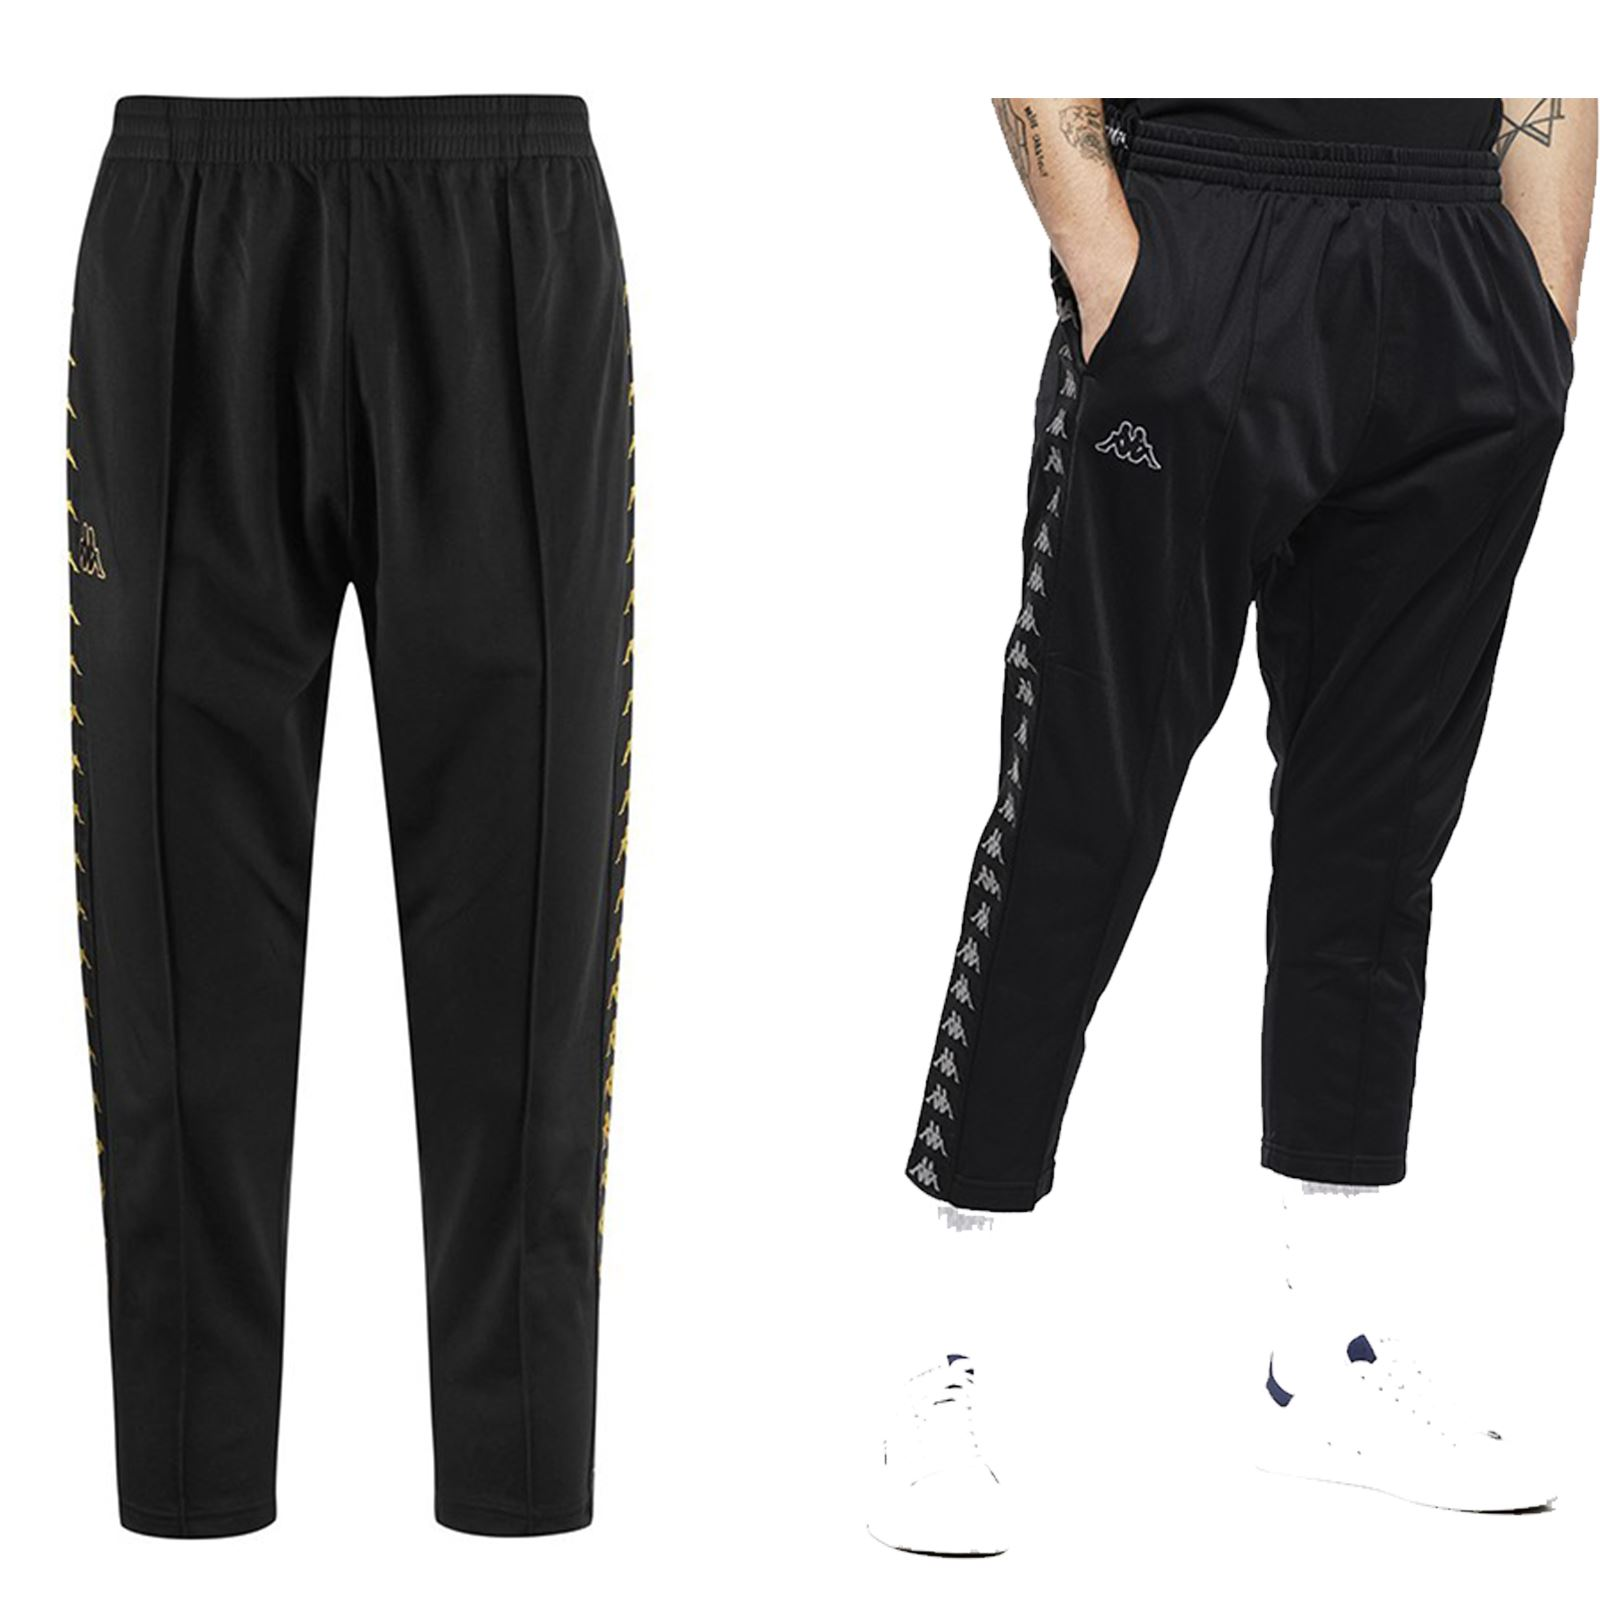 7a64d035b3e Details about Kappa Adern 222 Banda Pants Fleece Sweat Pants Track Jogging  Bottoms in Black